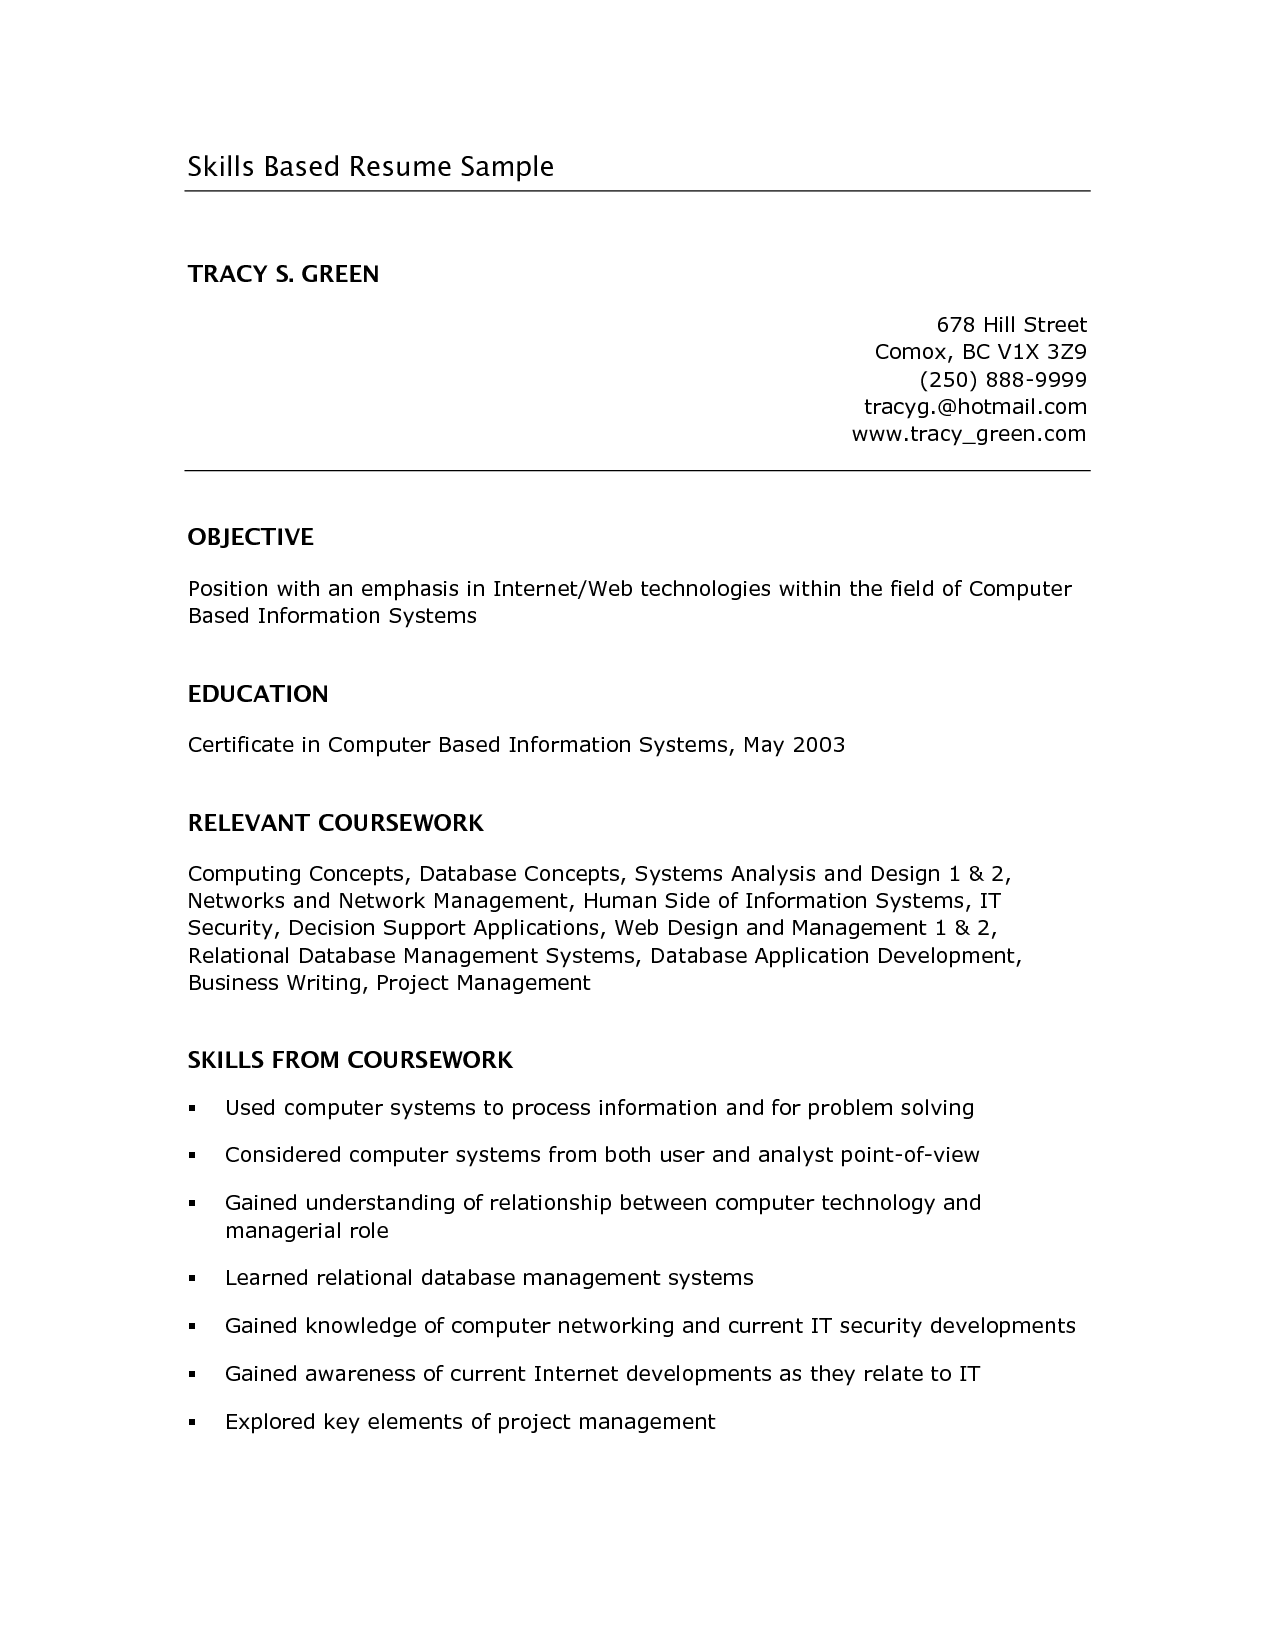 Skills Based Resume Template Skills Based Resume Example  Google Search  School  Business